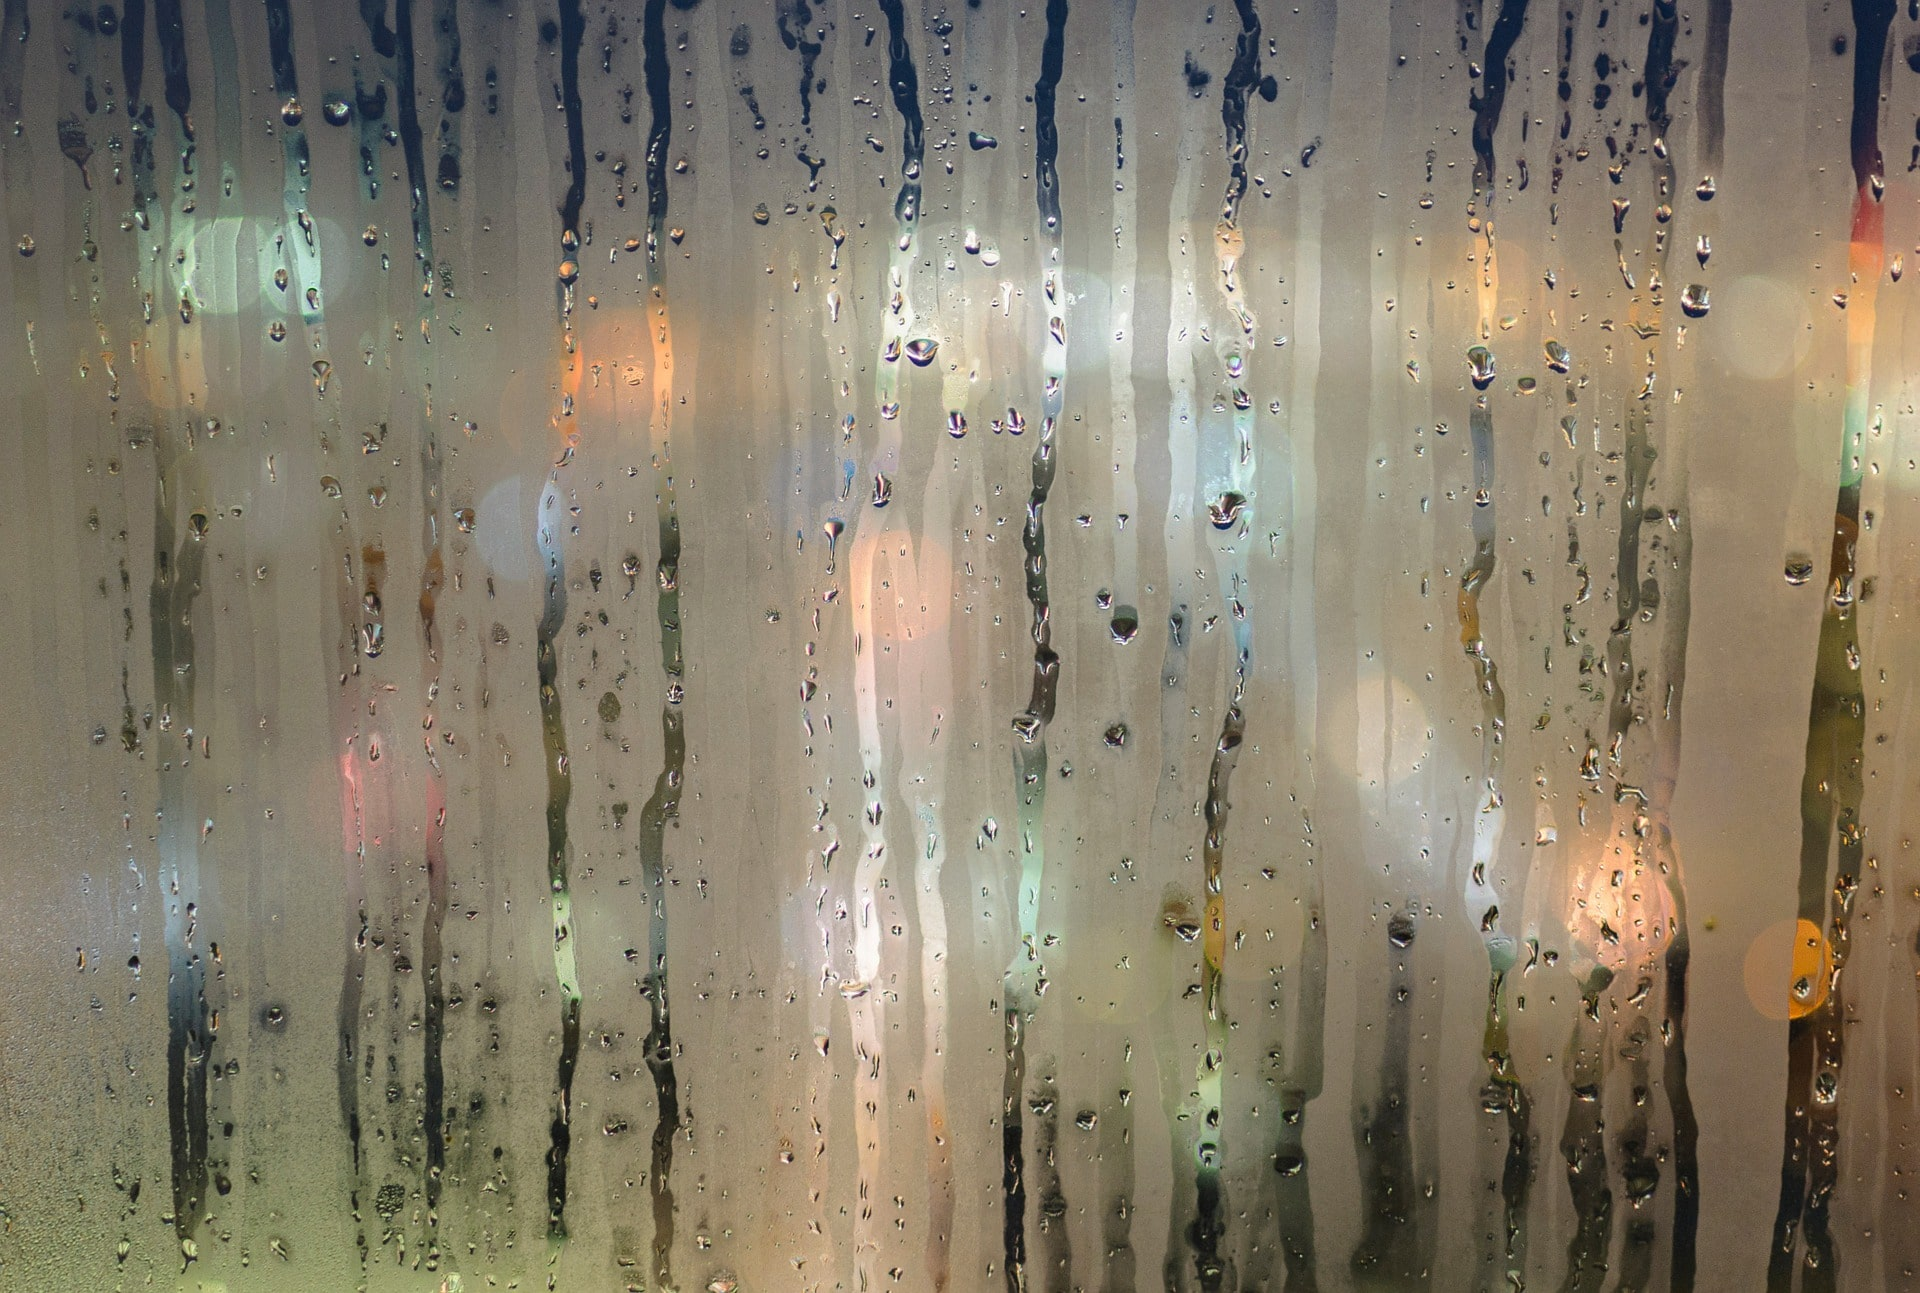 Water condensation on windows during winter royalty-free stock photo